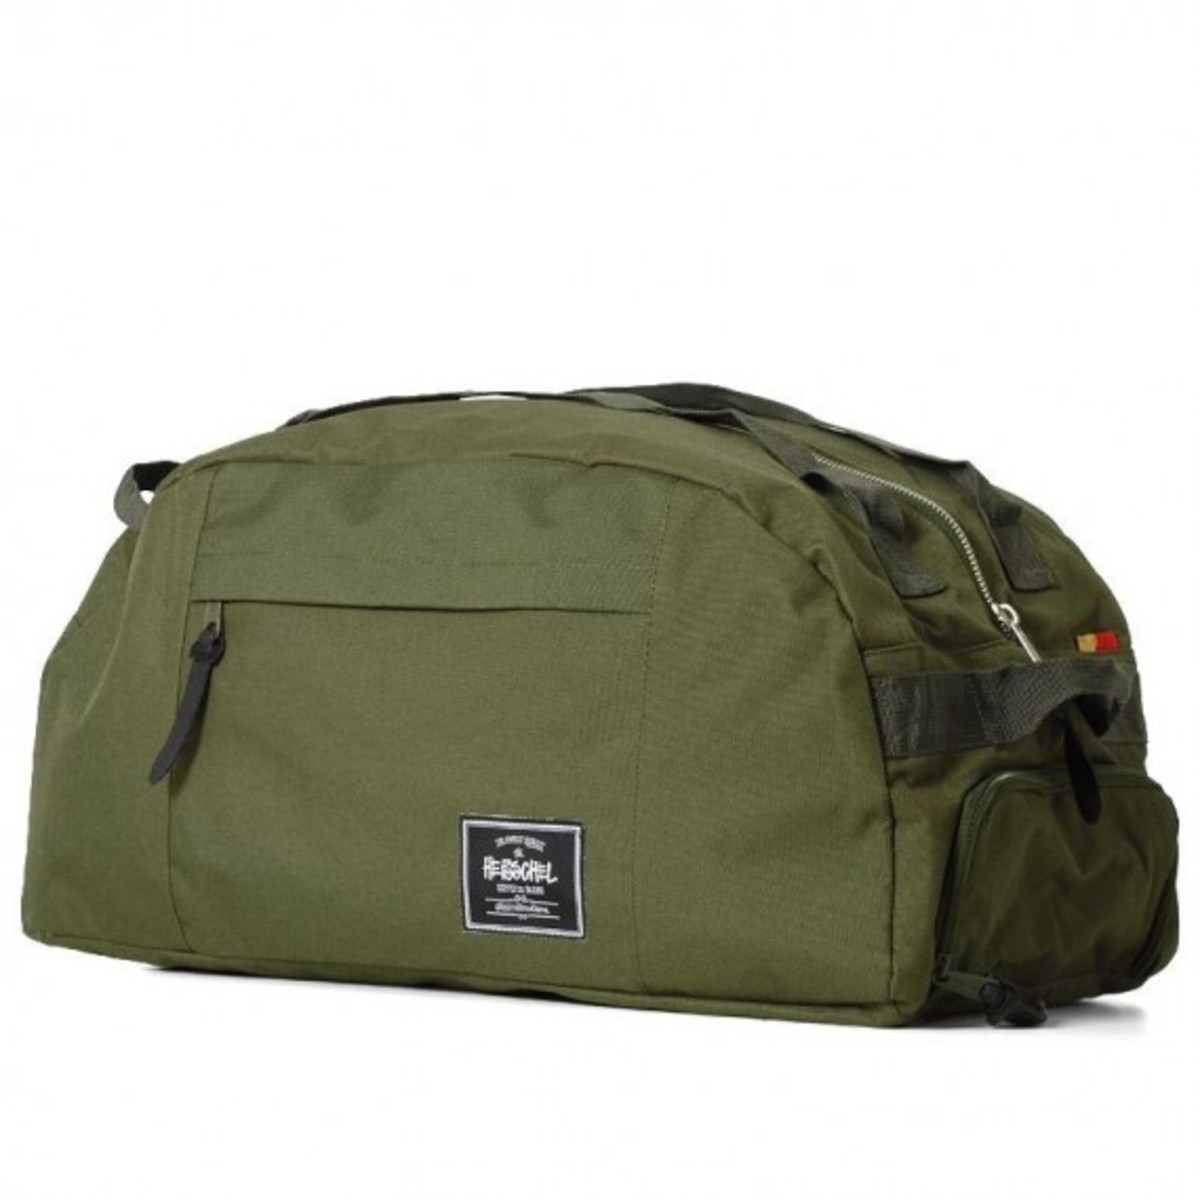 stussy-herschel-supply-duffle-bag-collection-15